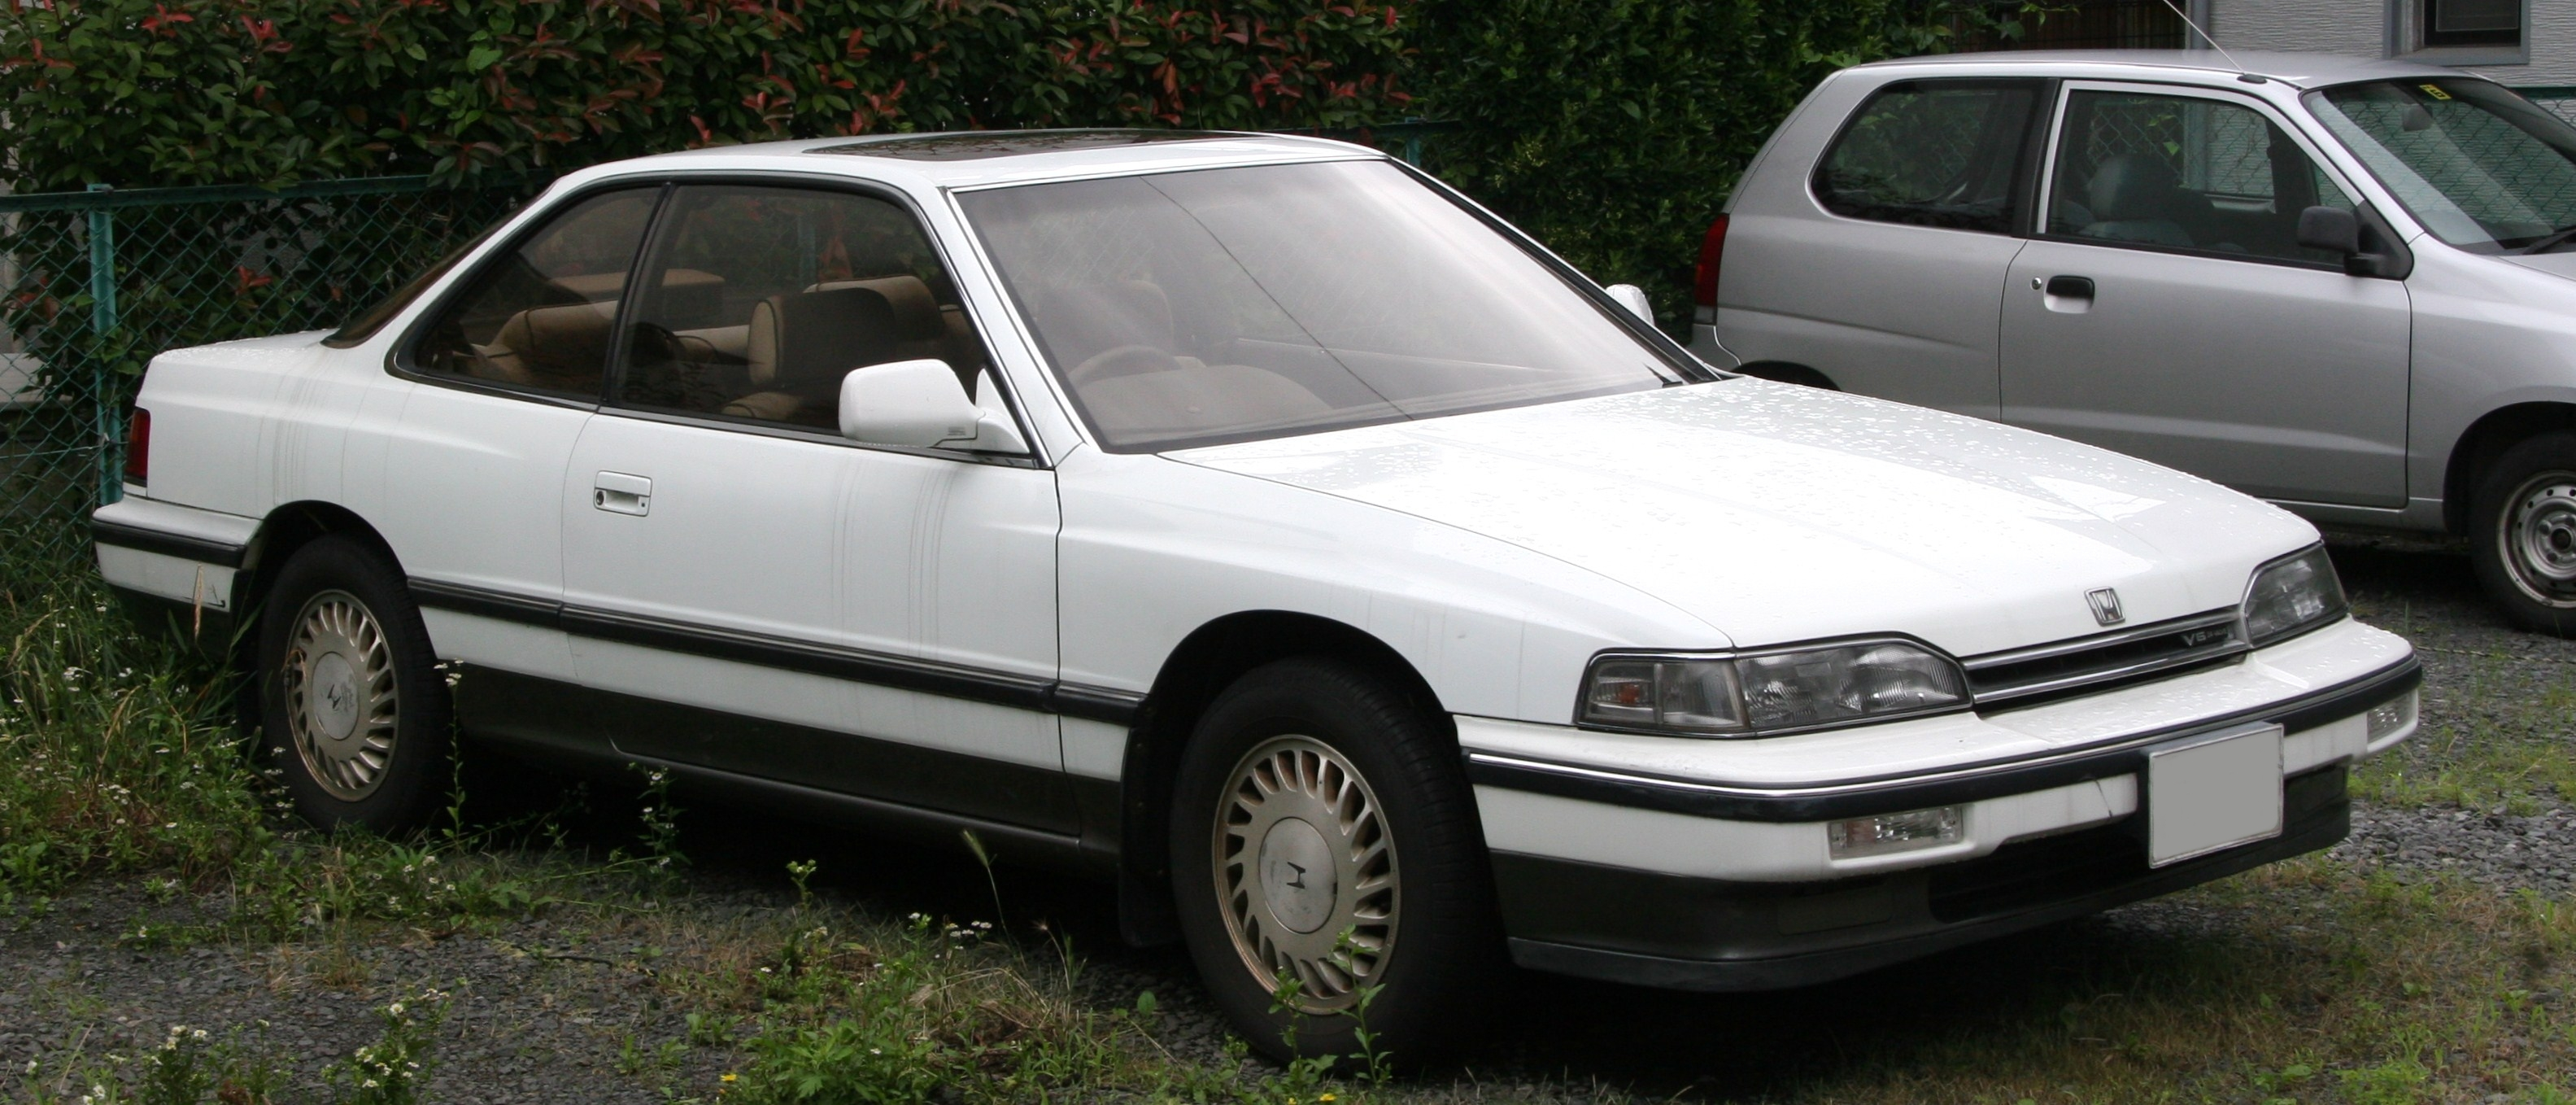 Honda Legend 1997 Cr V Wiring Diagram Specs Price Release Date Redesign Coupe And Other Changes